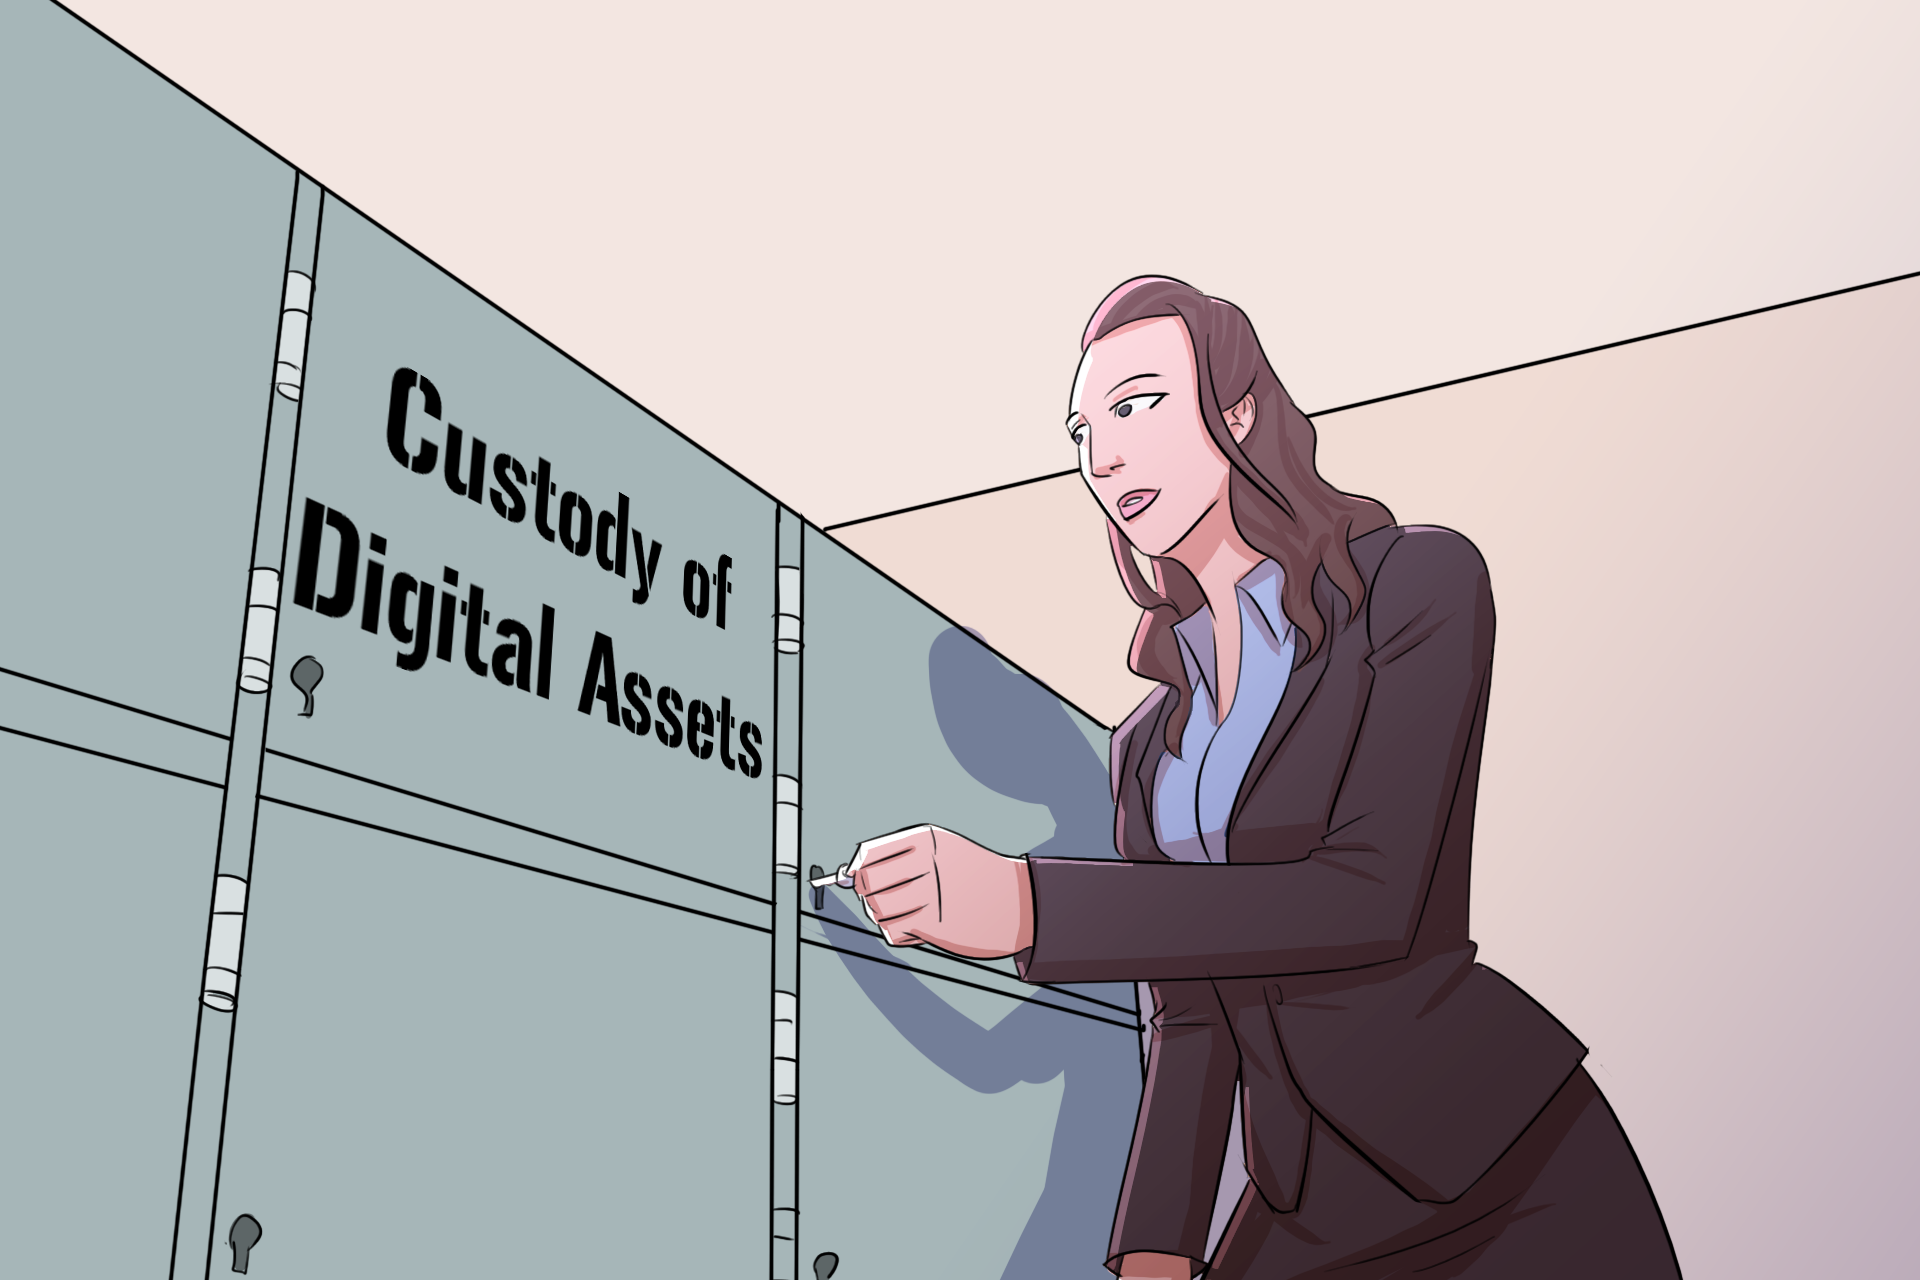 Custody of Digital Assets: How to Treat a New Class of Value